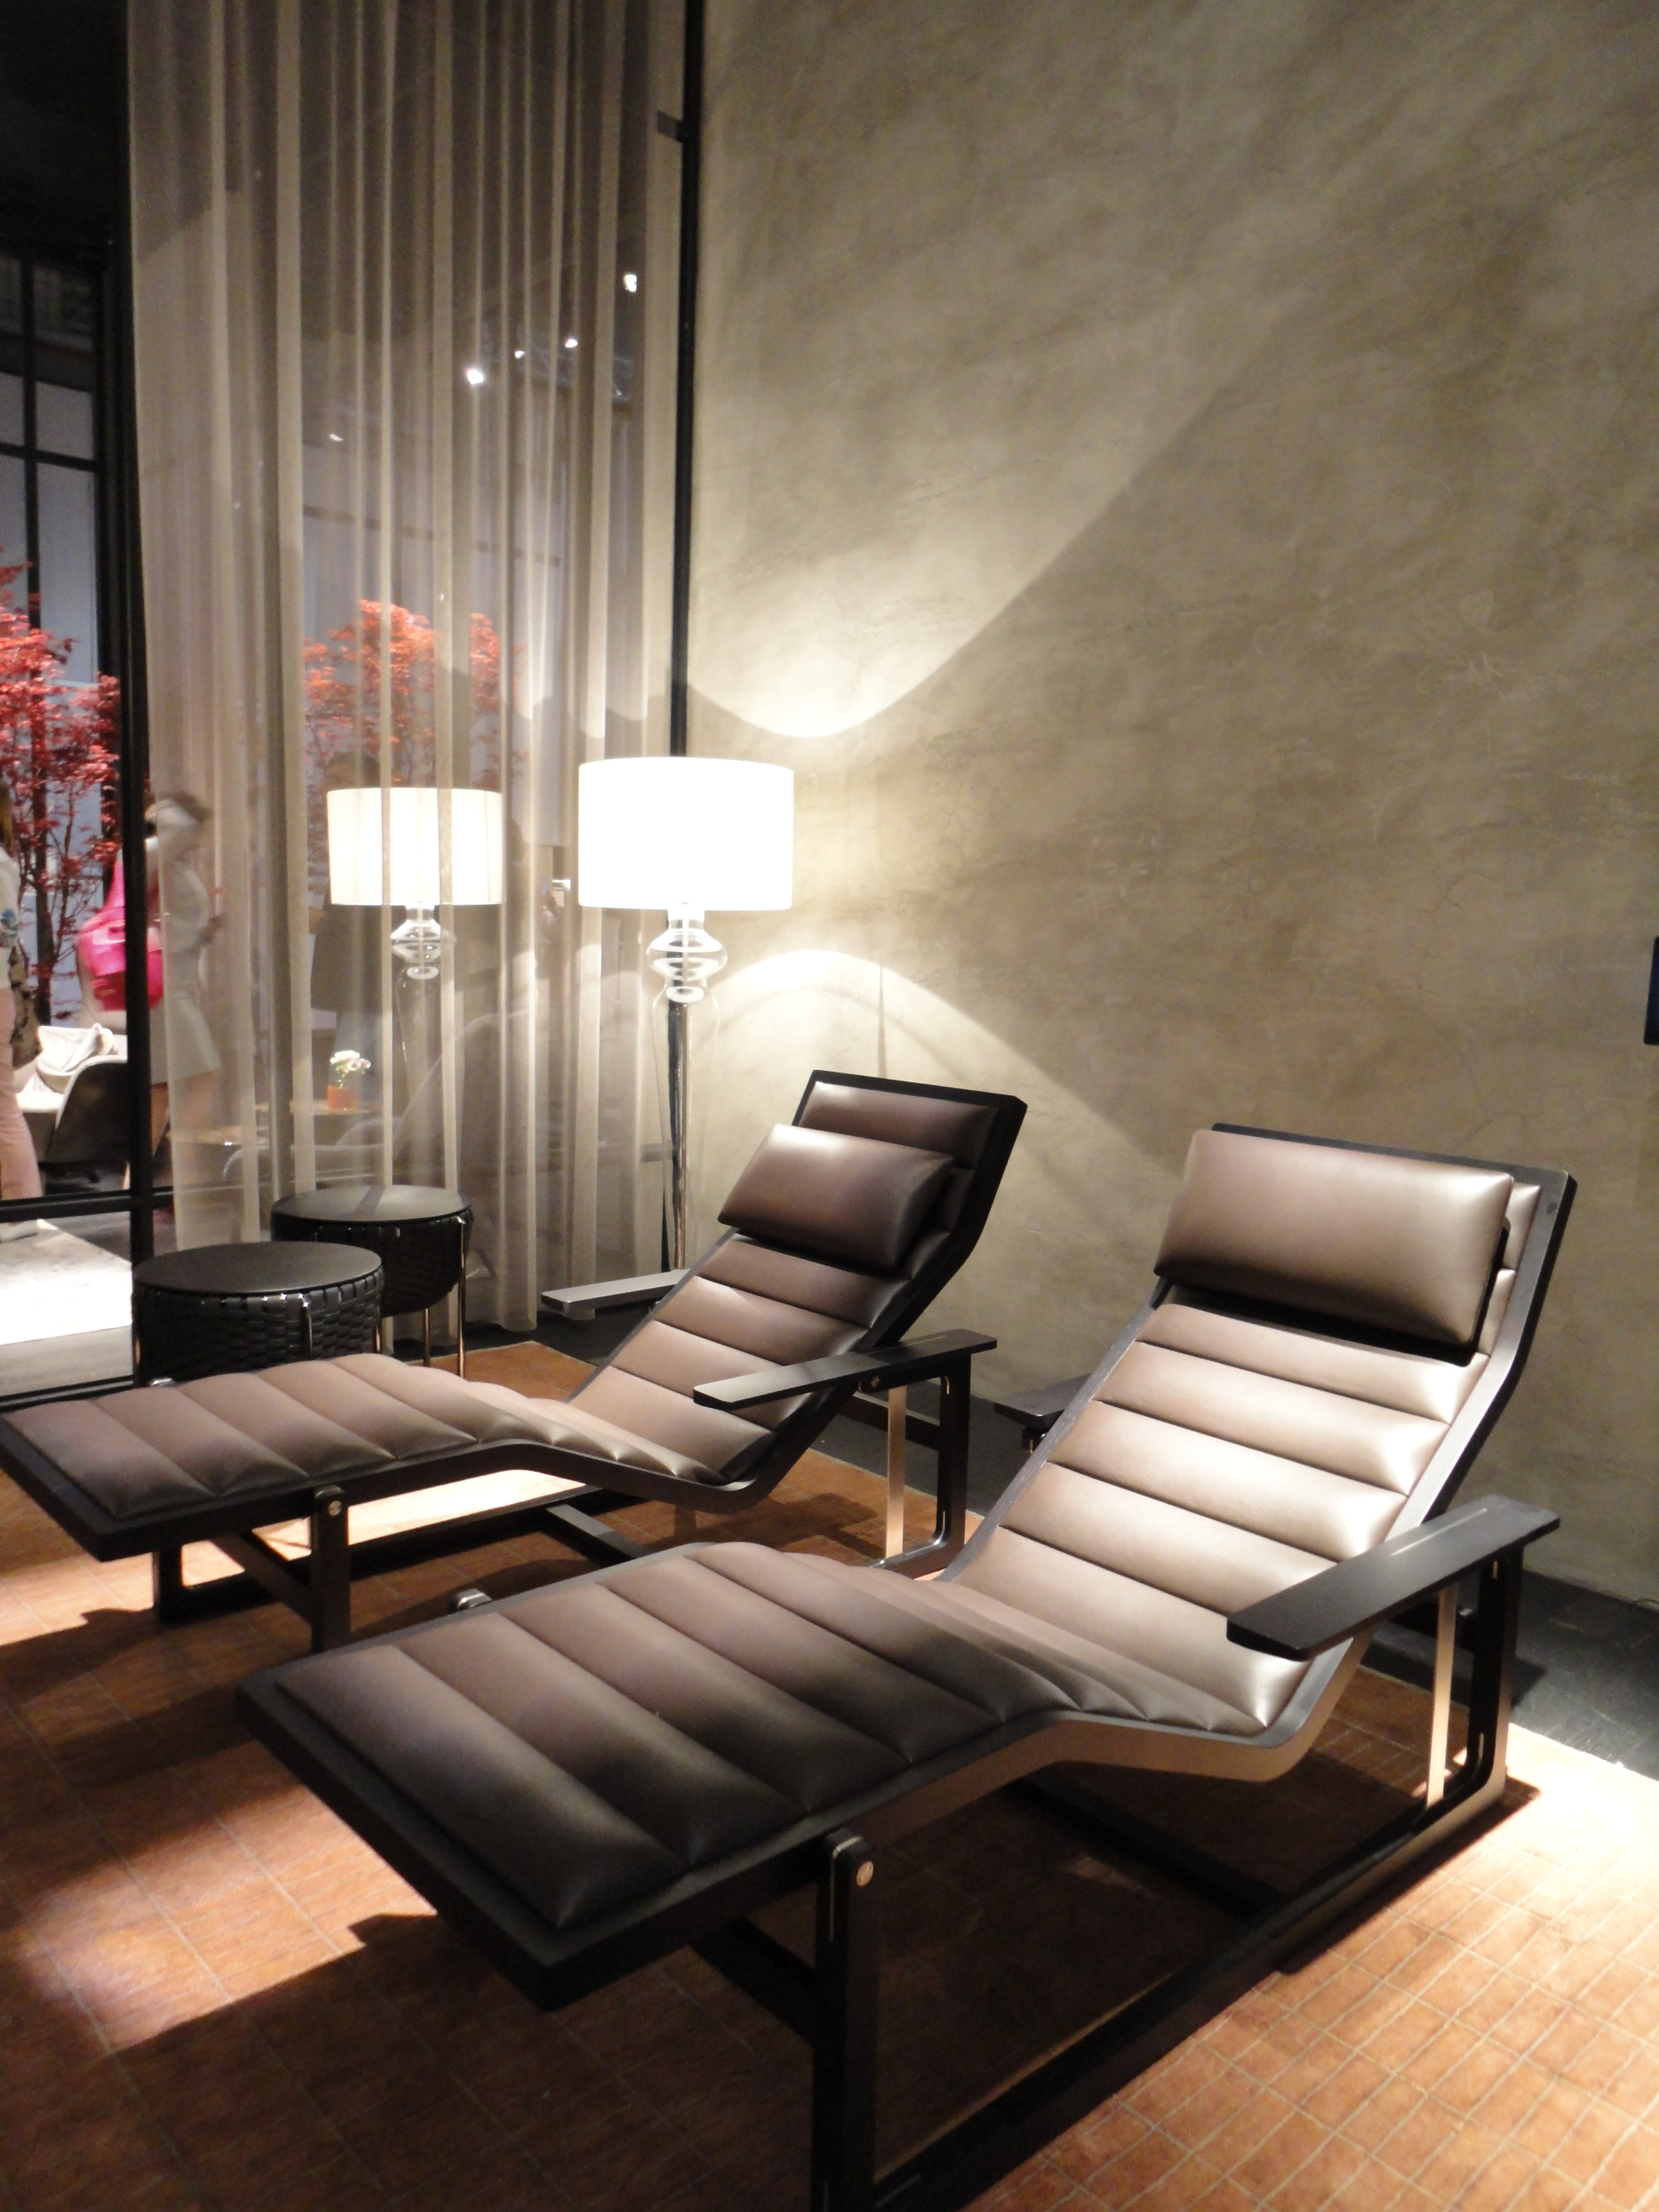 The new 'Byron' chaise in a divine chocolate toned leather